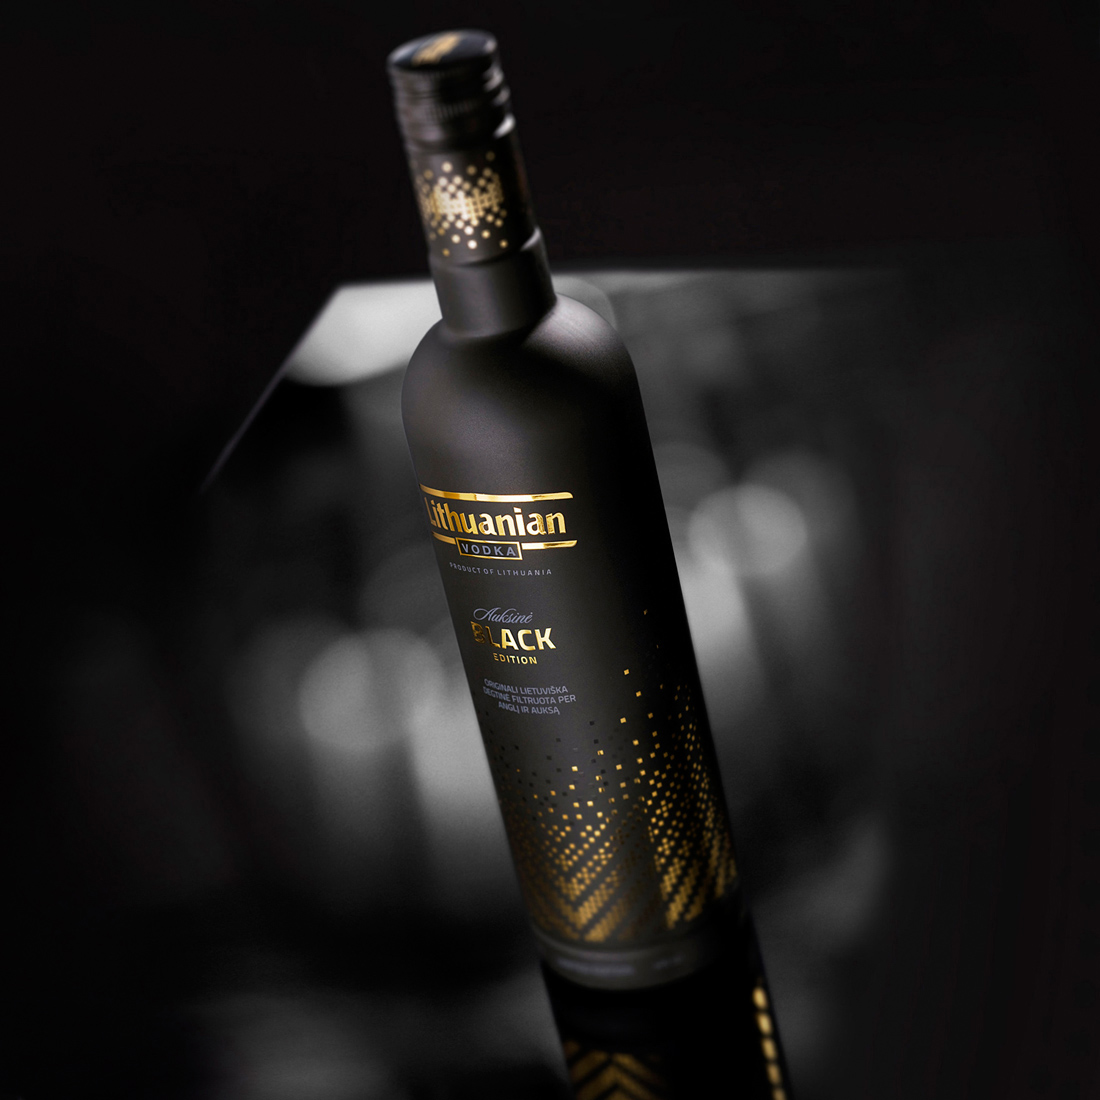 Lithuanian-Vodka-Black-Edition-2.jpg